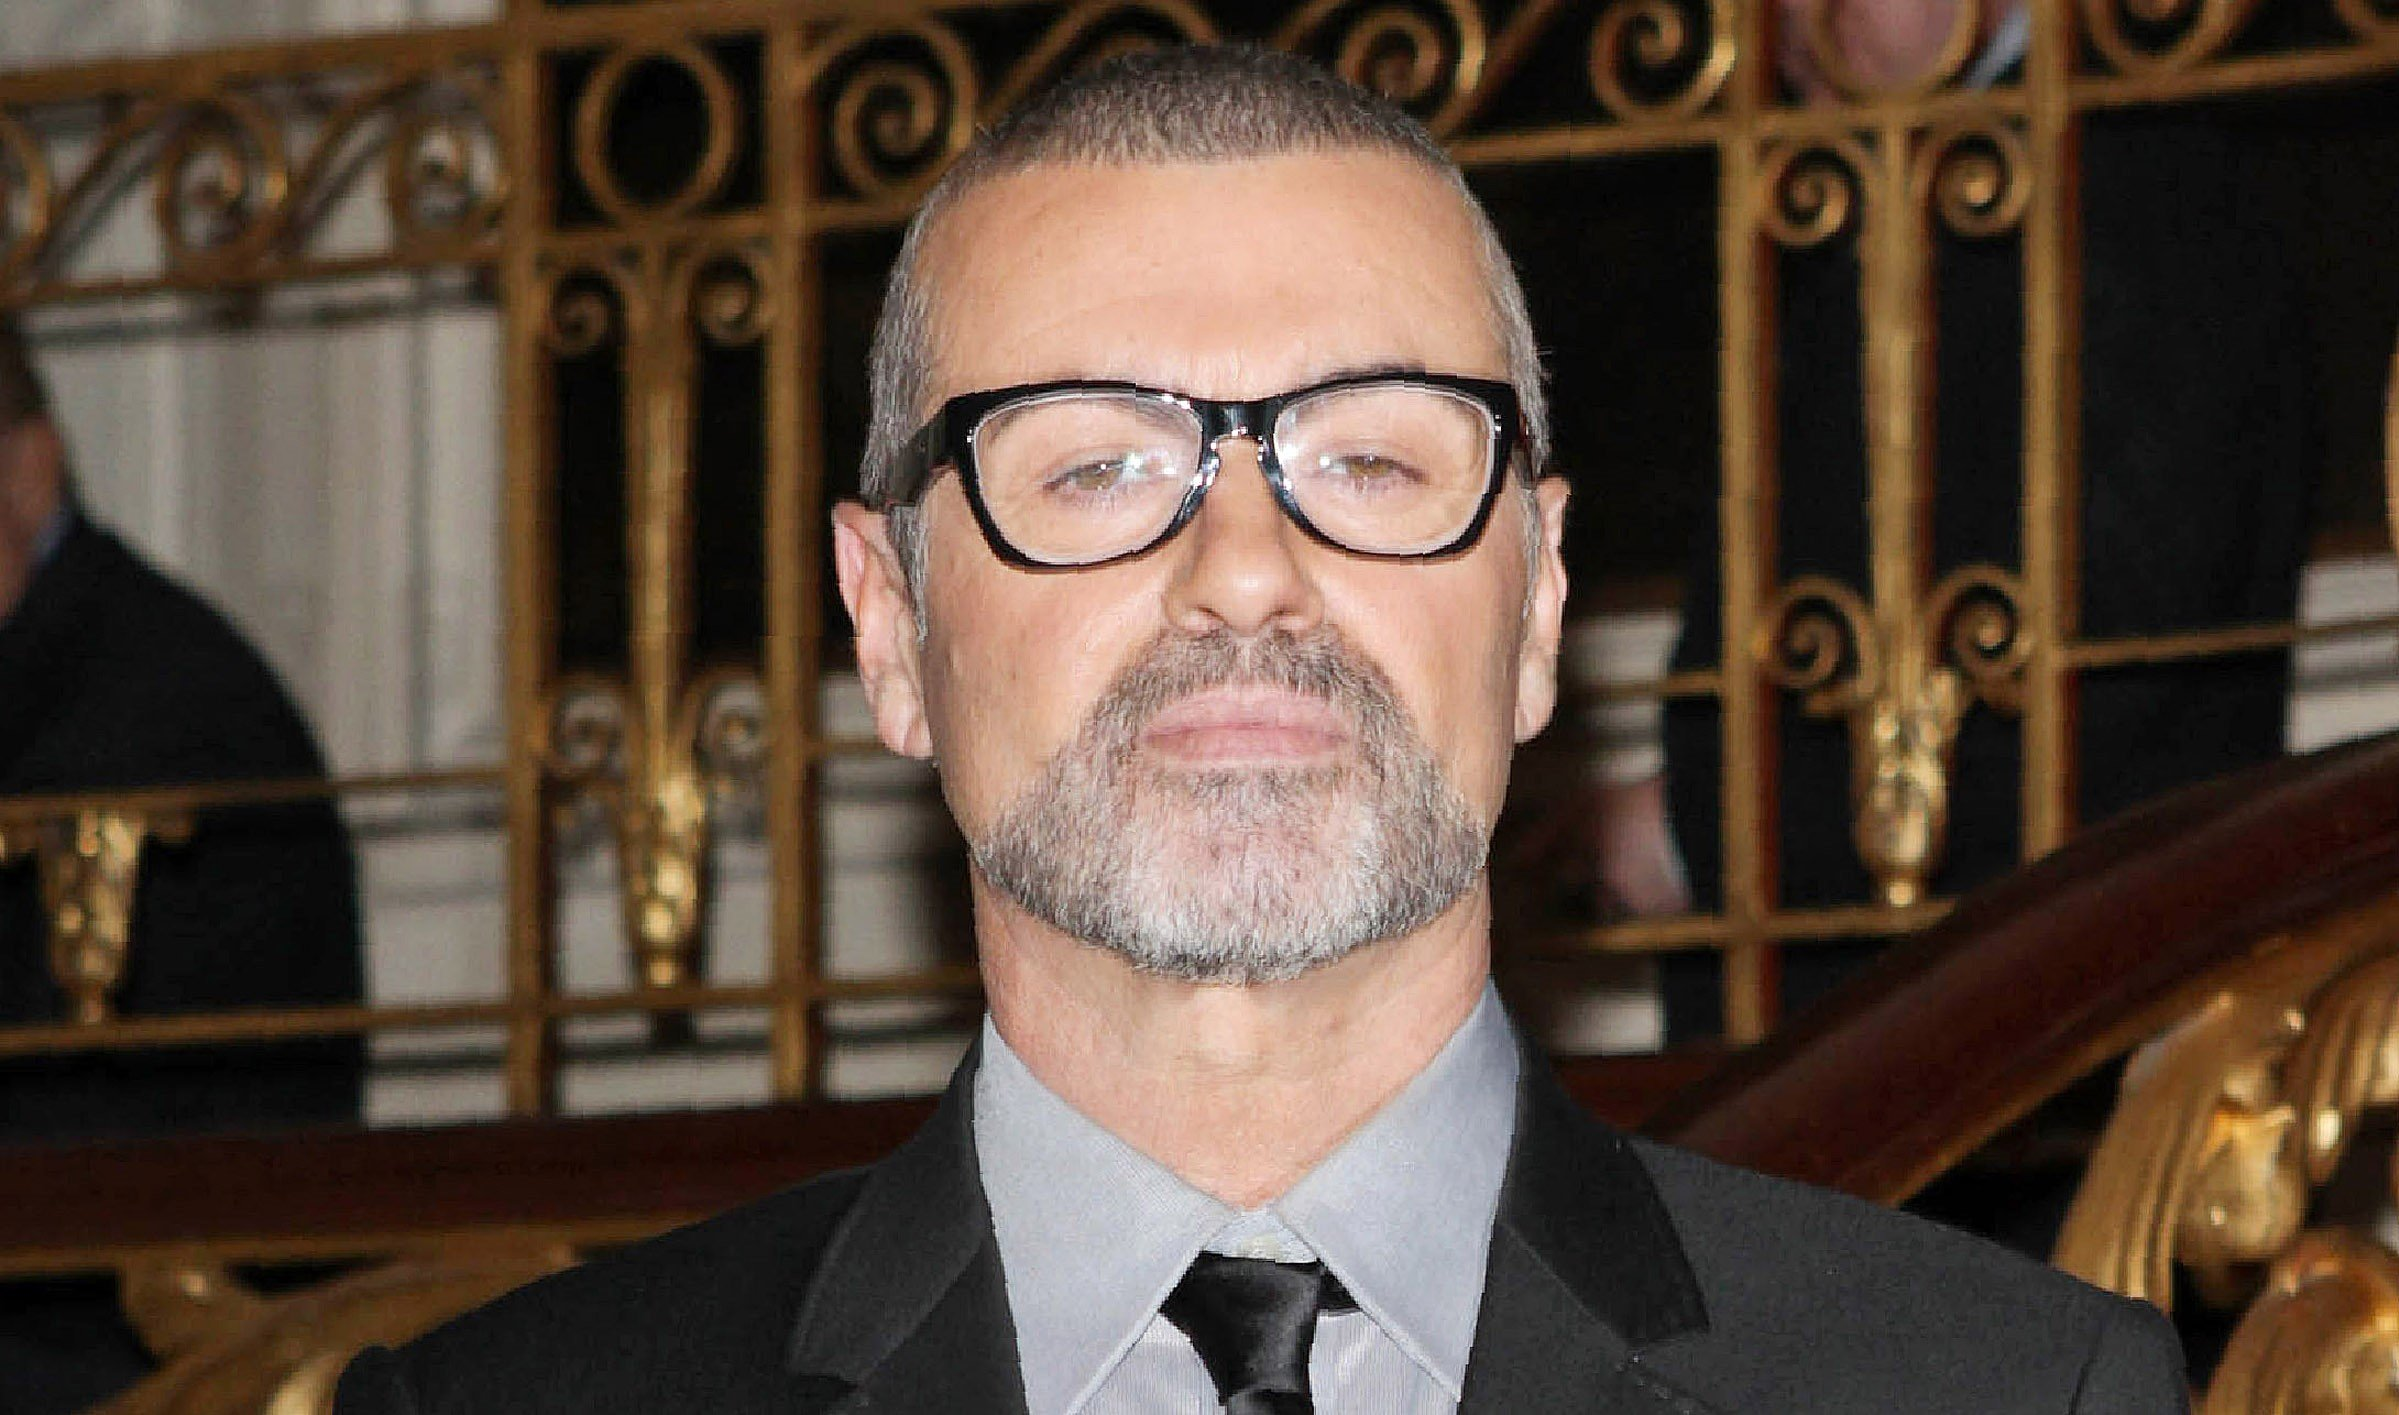 George Michael's sister Melanie Panayiotou has passed away, aged 55